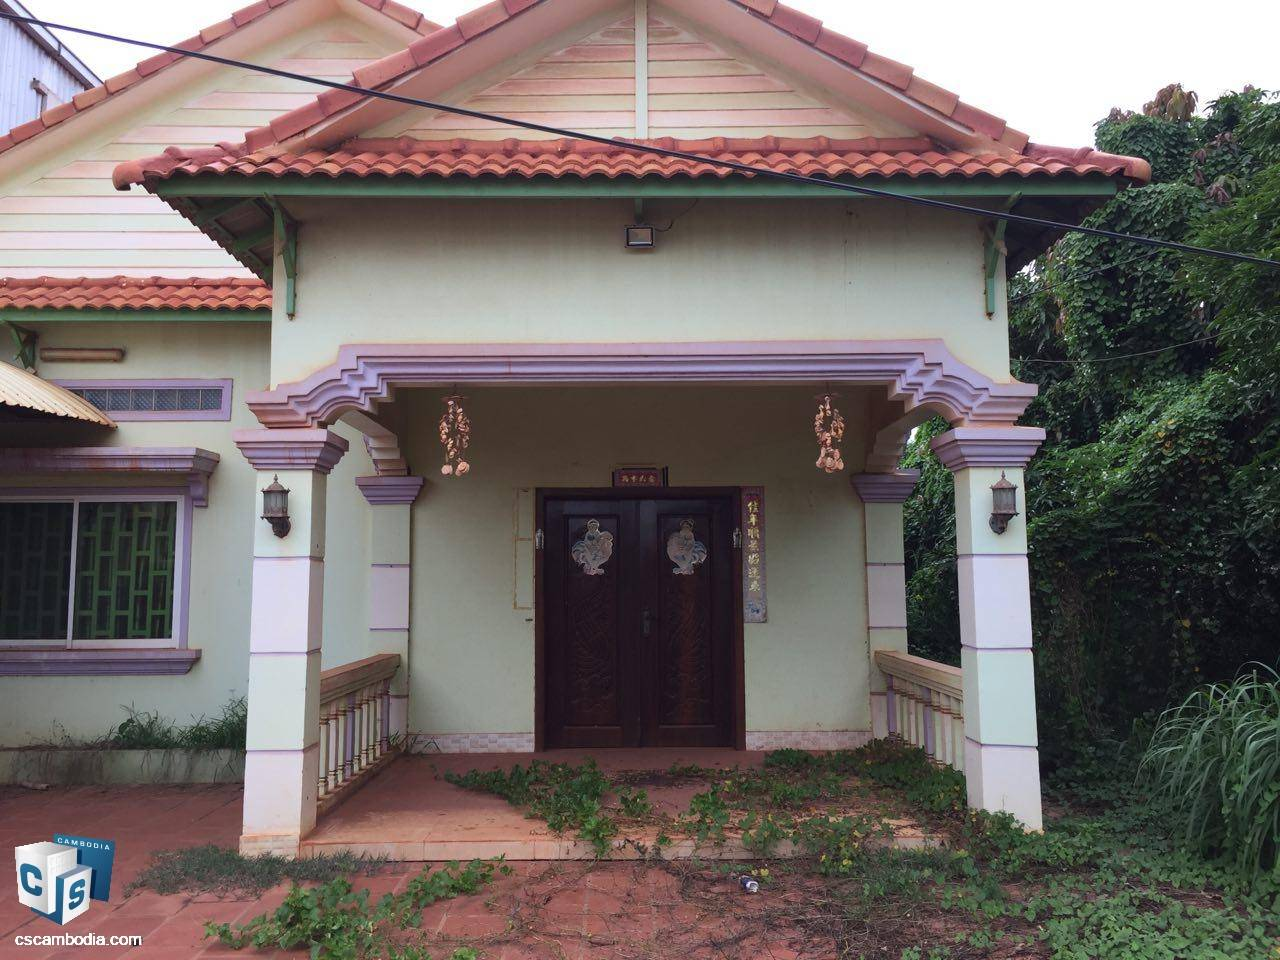 3 Bedroom House – For Rent – Phnea Chey Village – Svay Dangkum Commune – Siem Reap